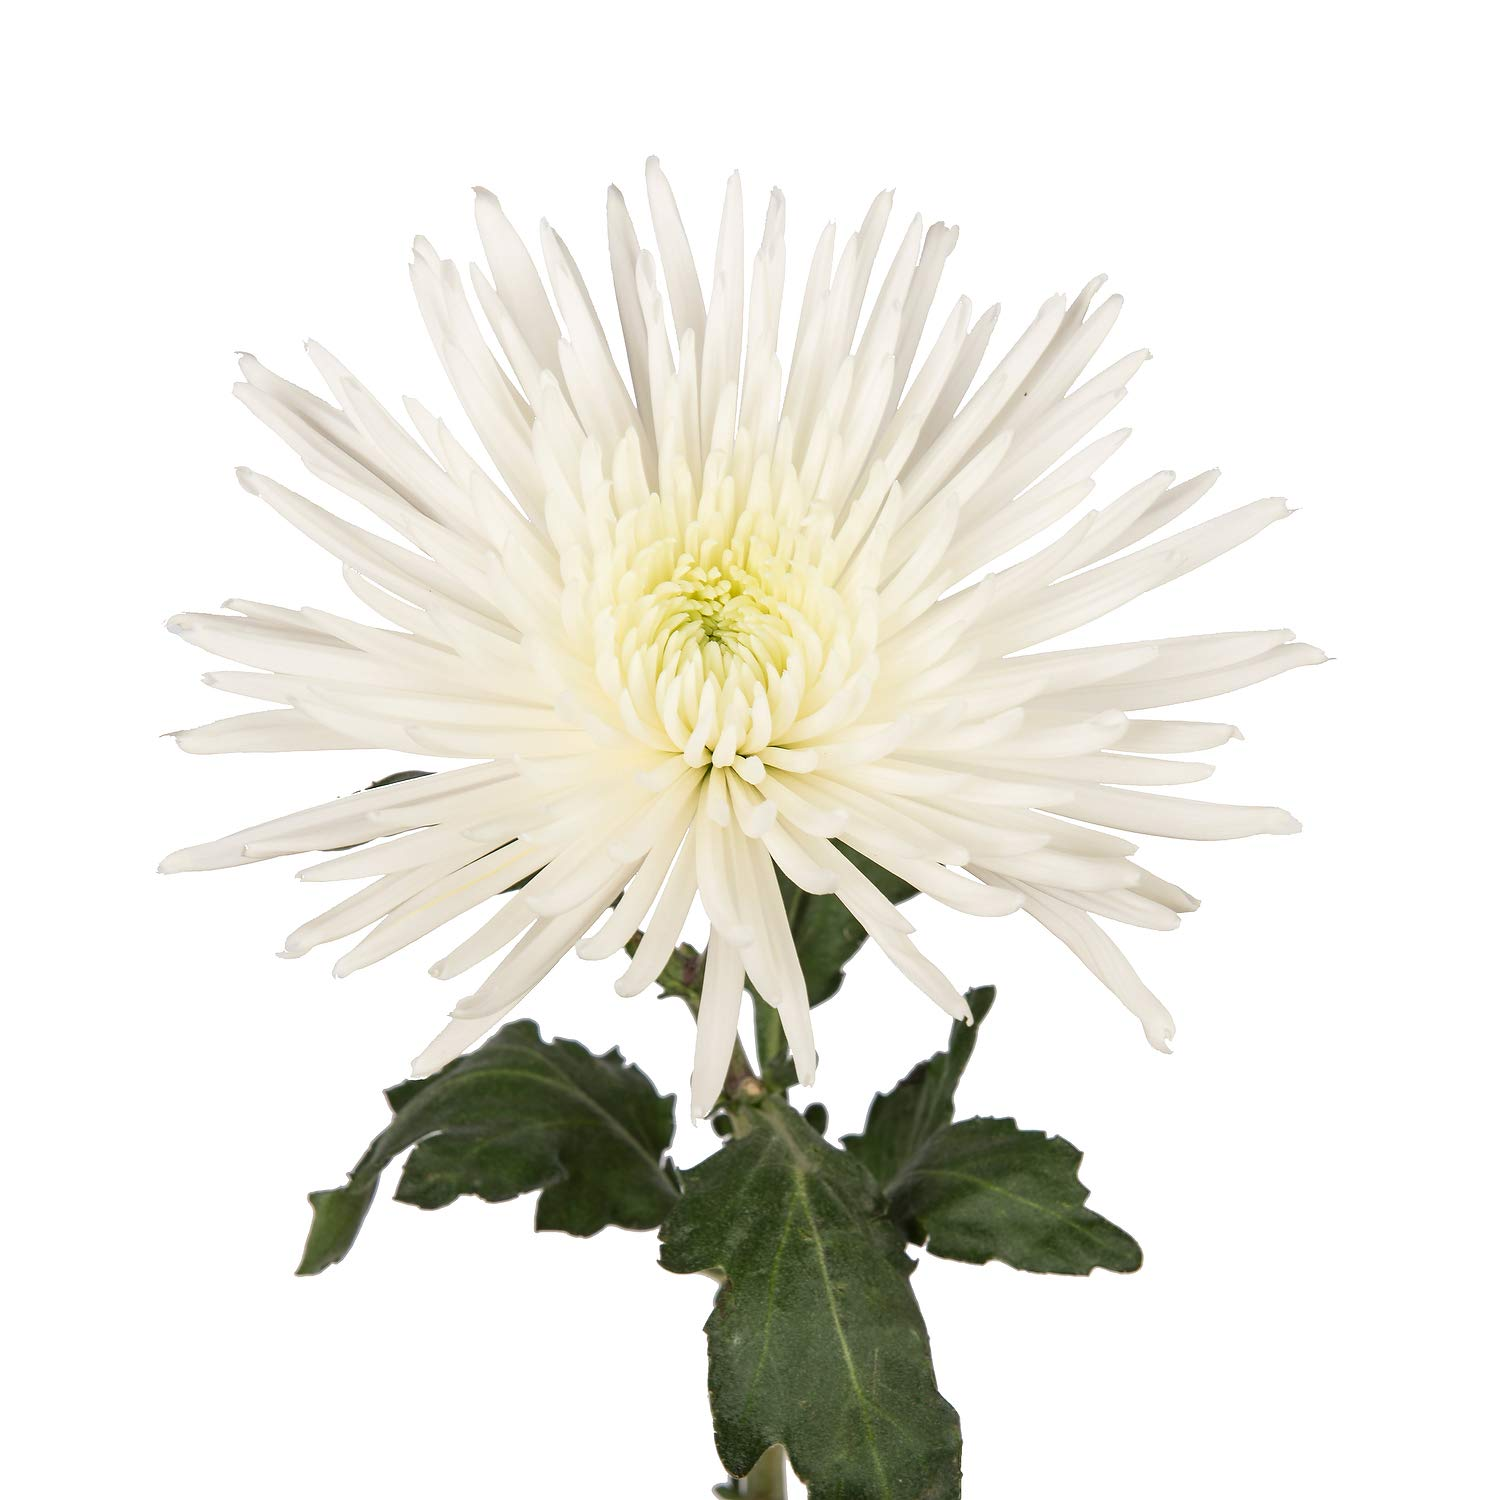 Farm Fresh Natural White Spider Mums - 60 Stems by Bloomingmore